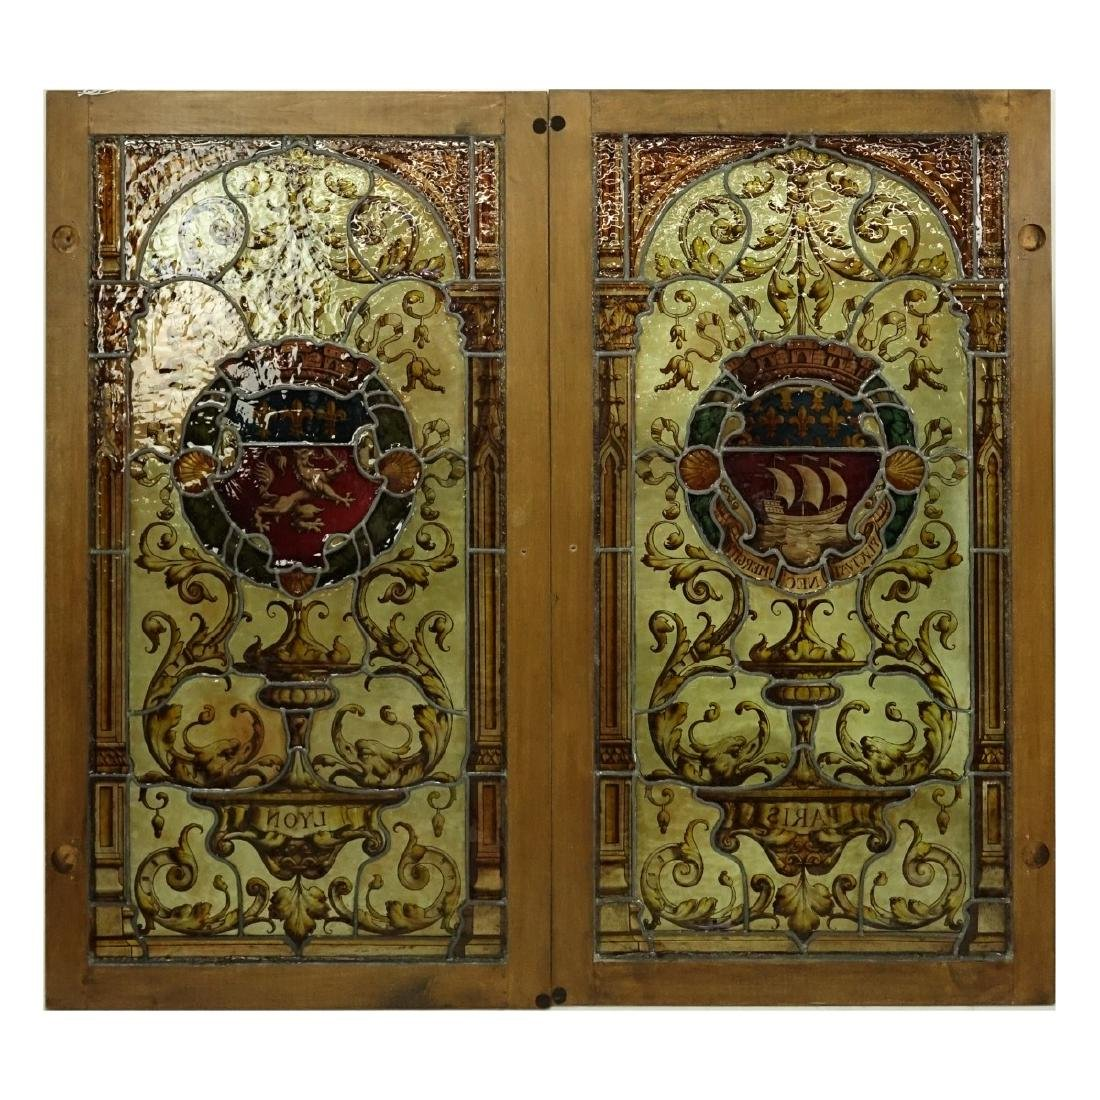 Pair of Vintage Stained Glass Window Panels - 7